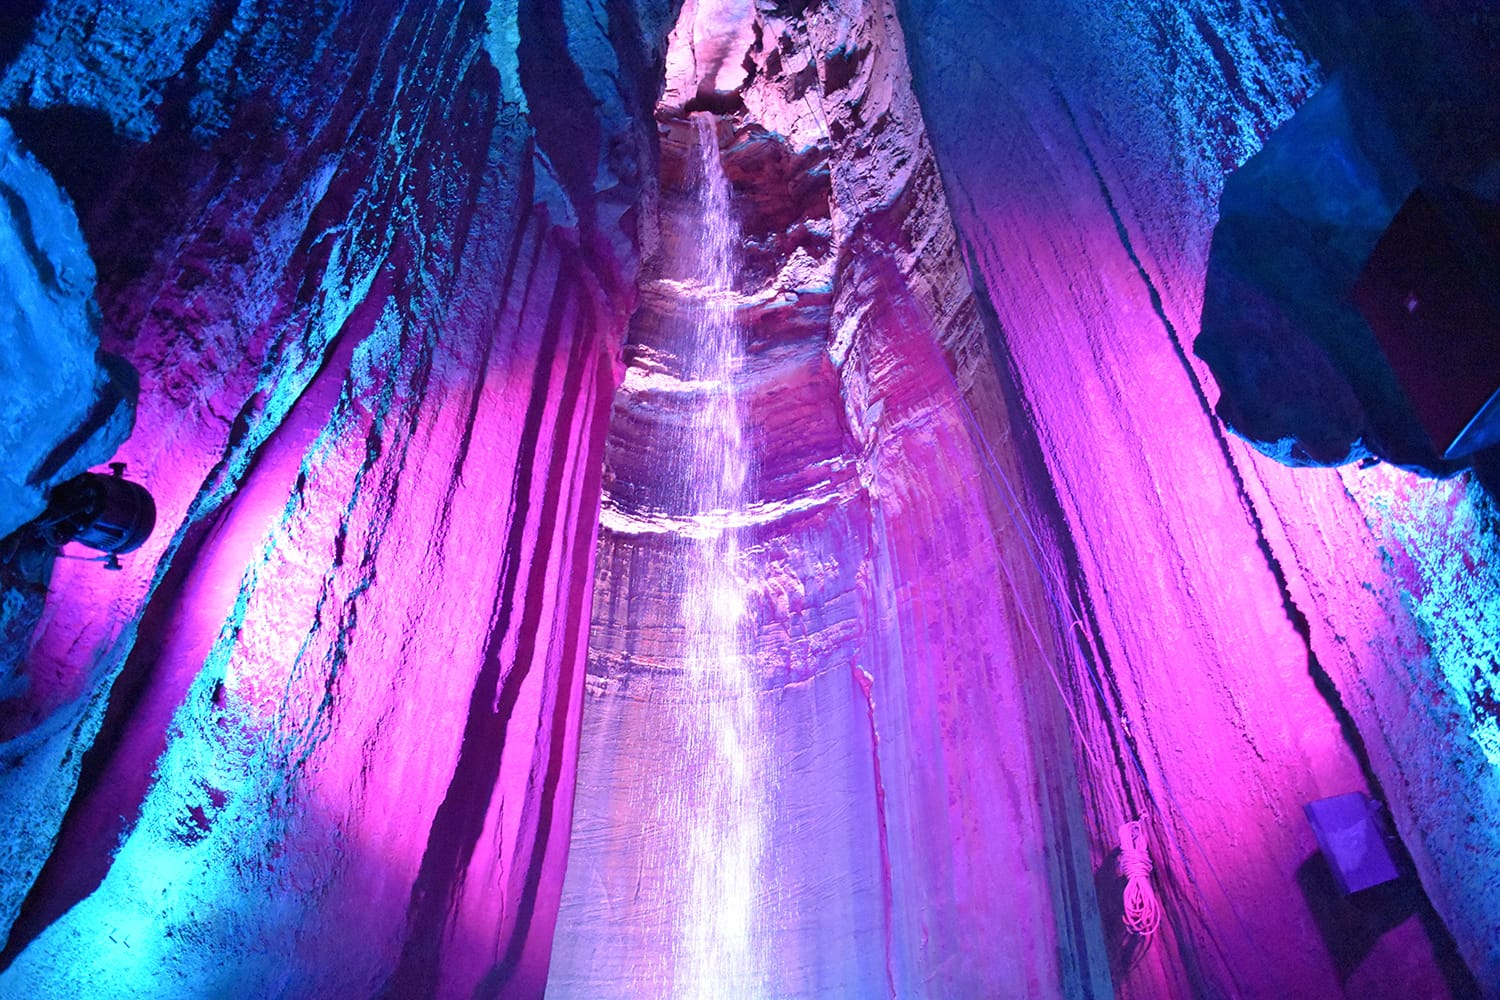 Ruby Falls in Chattanooga, Tennessee, USA